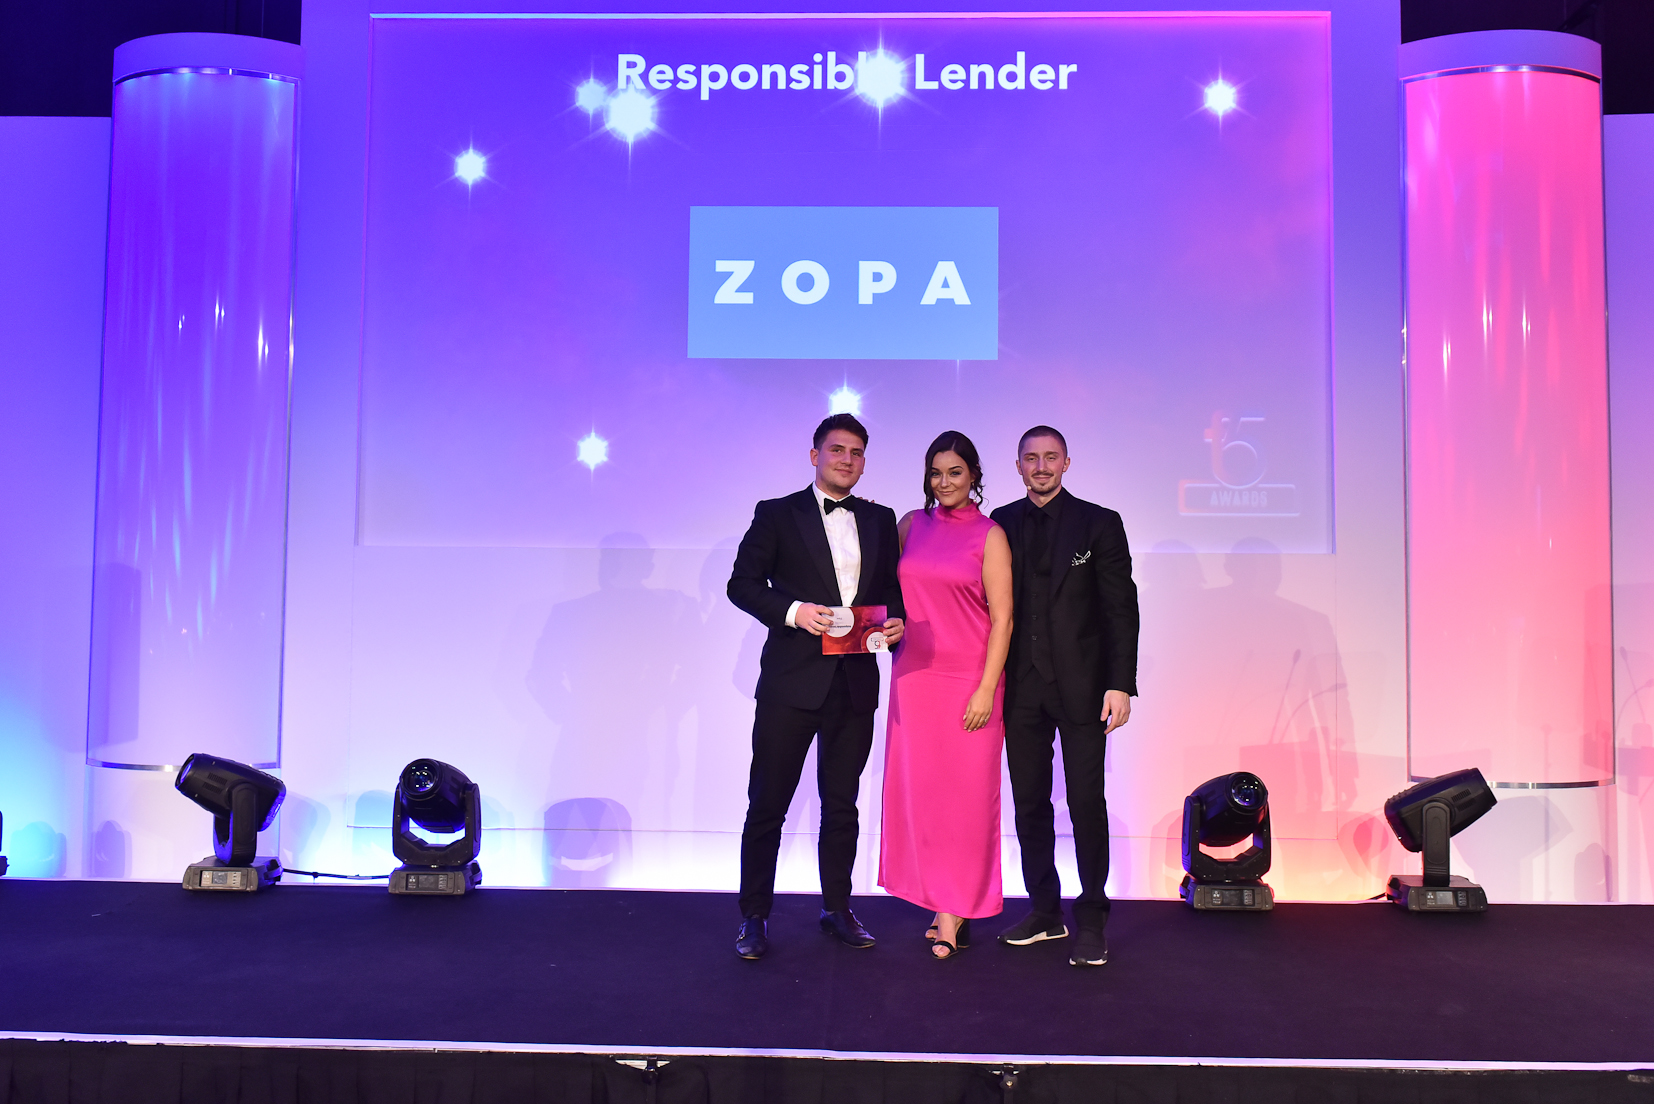 Winners F5 2017 - 10 Responsible Lender